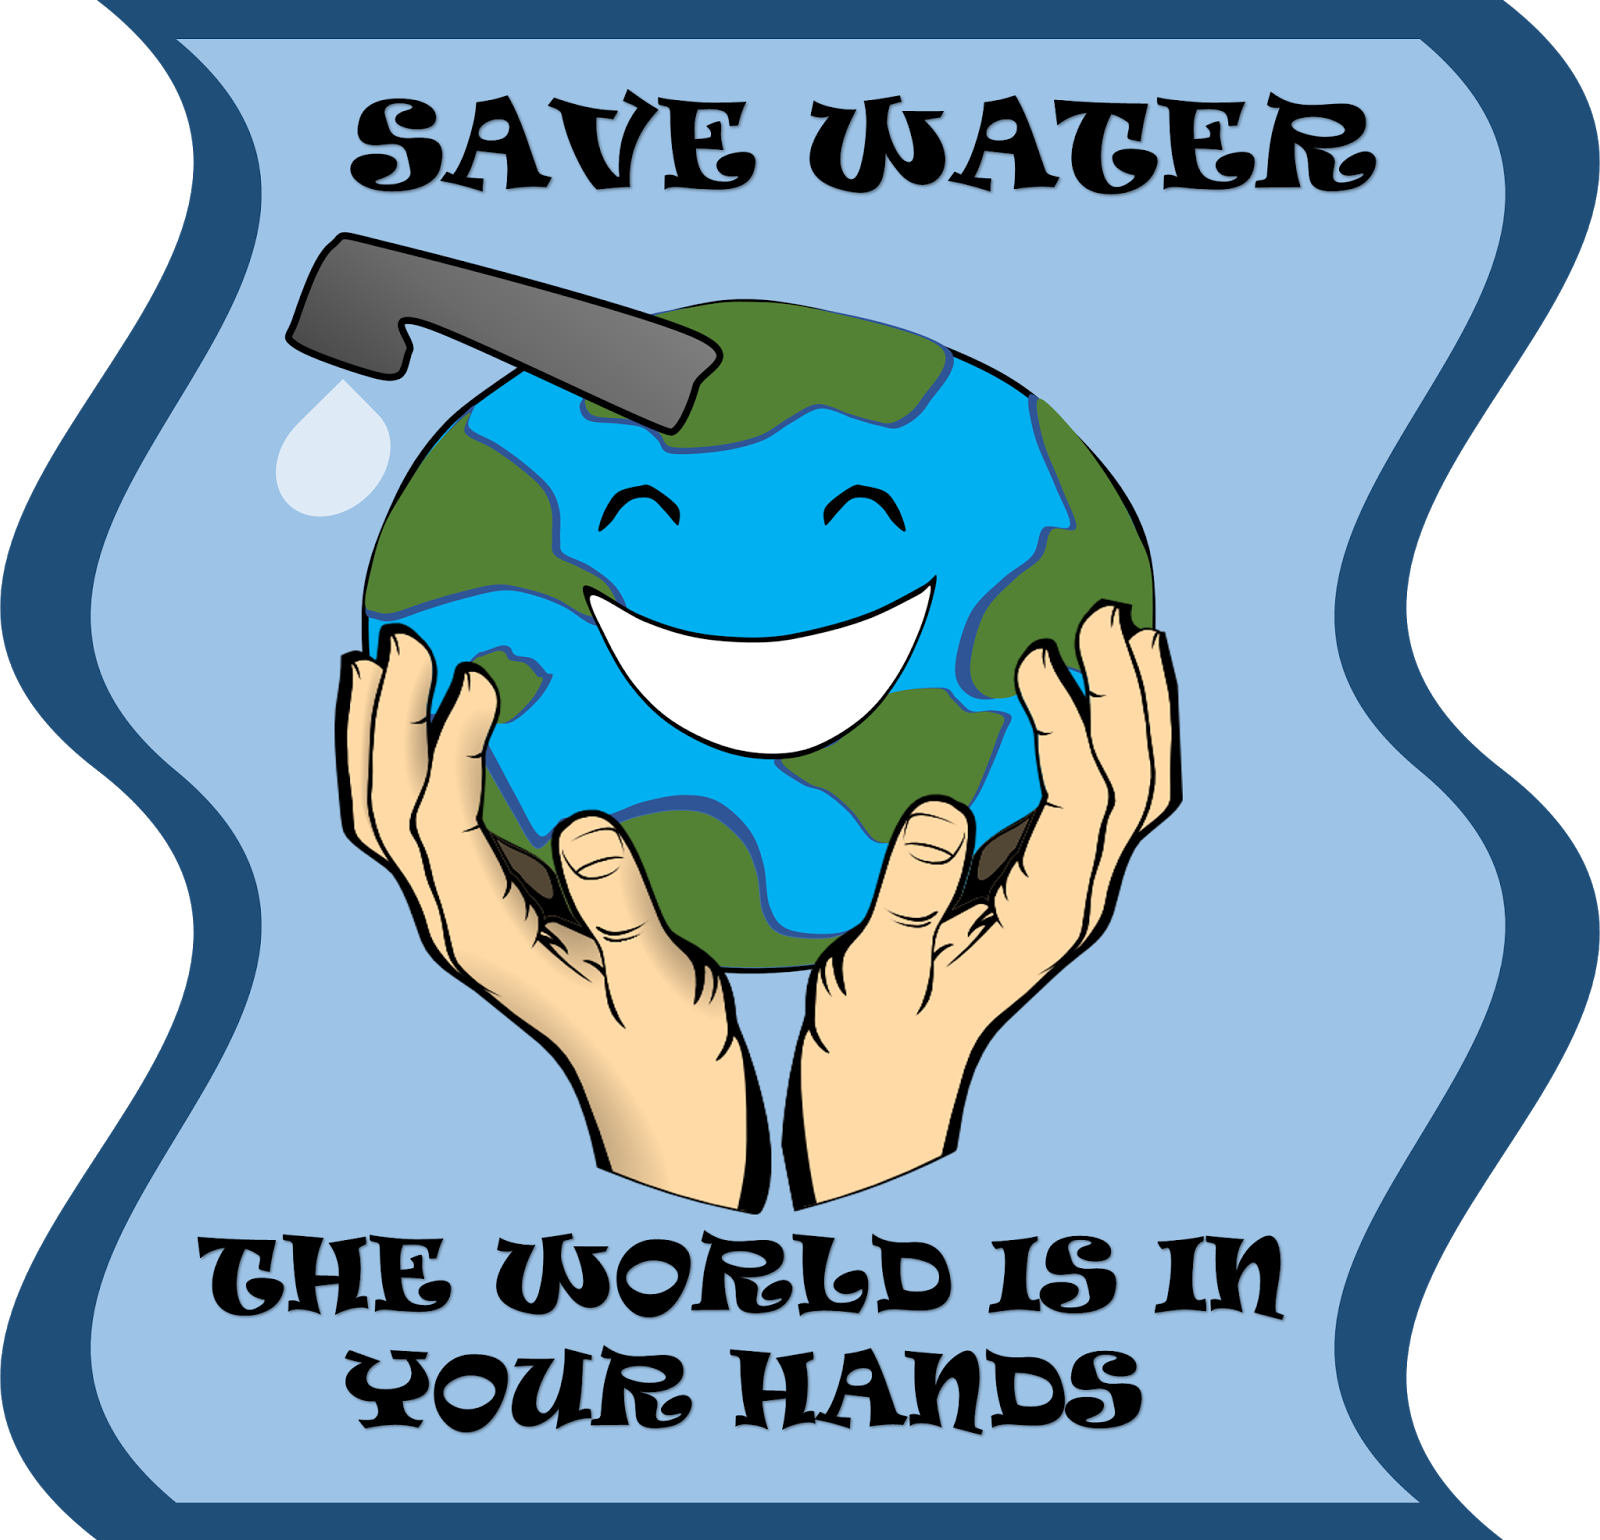 image free stock Save water free on. Poster clipart